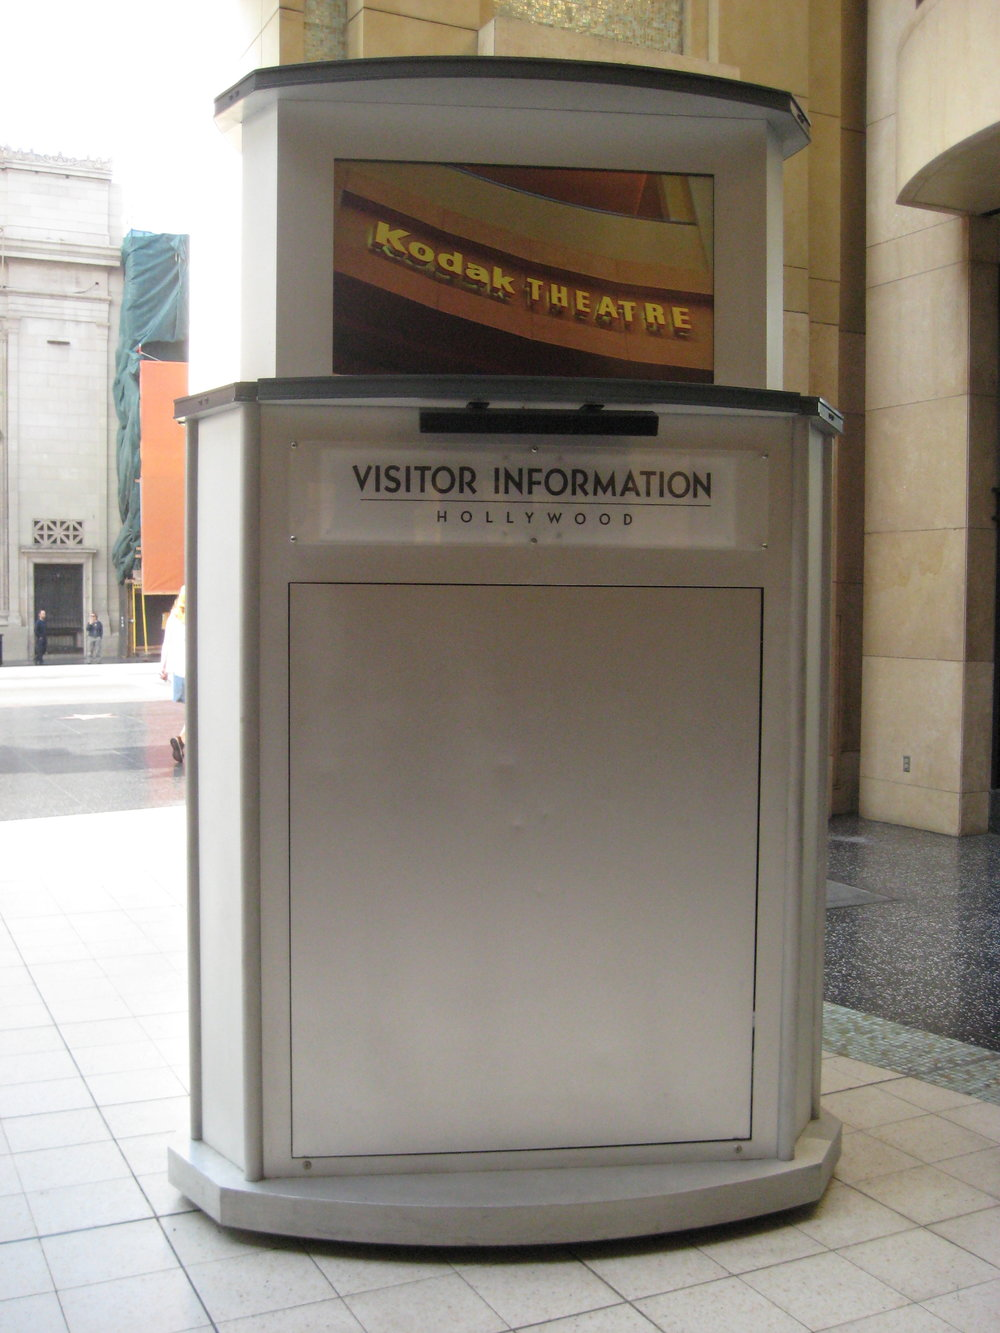 Hollywood Visitor Information Kiosk